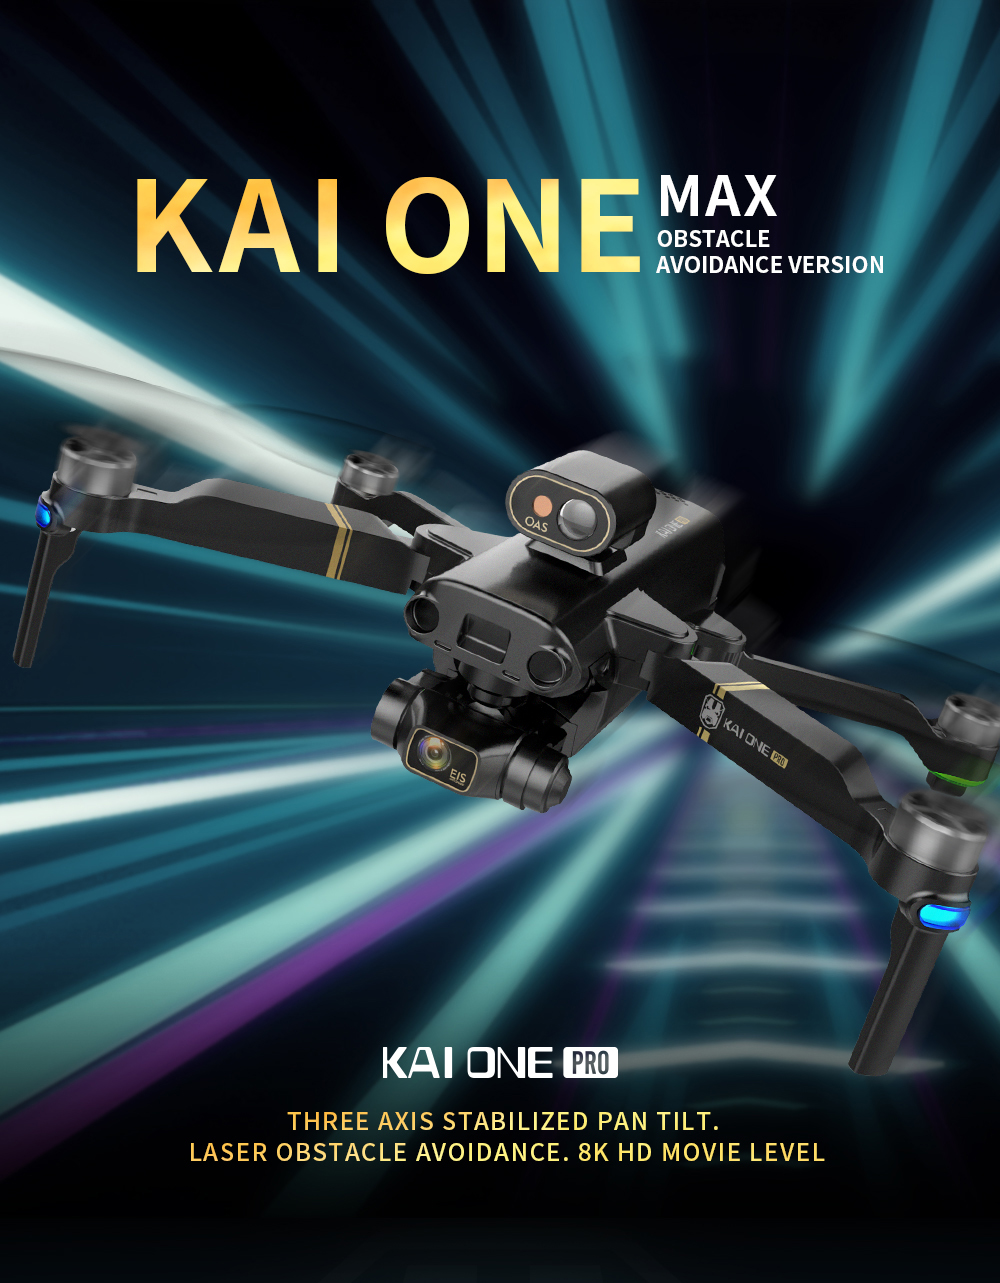 H01414169bc31418bbaab7494895fb90em - KAI ONE MAX GPS Drone 4K Camera 5G FPV WiFi Laser Obstacle Avoidance Altitude Hold Brushless RC Quadcopter Profesional Dron